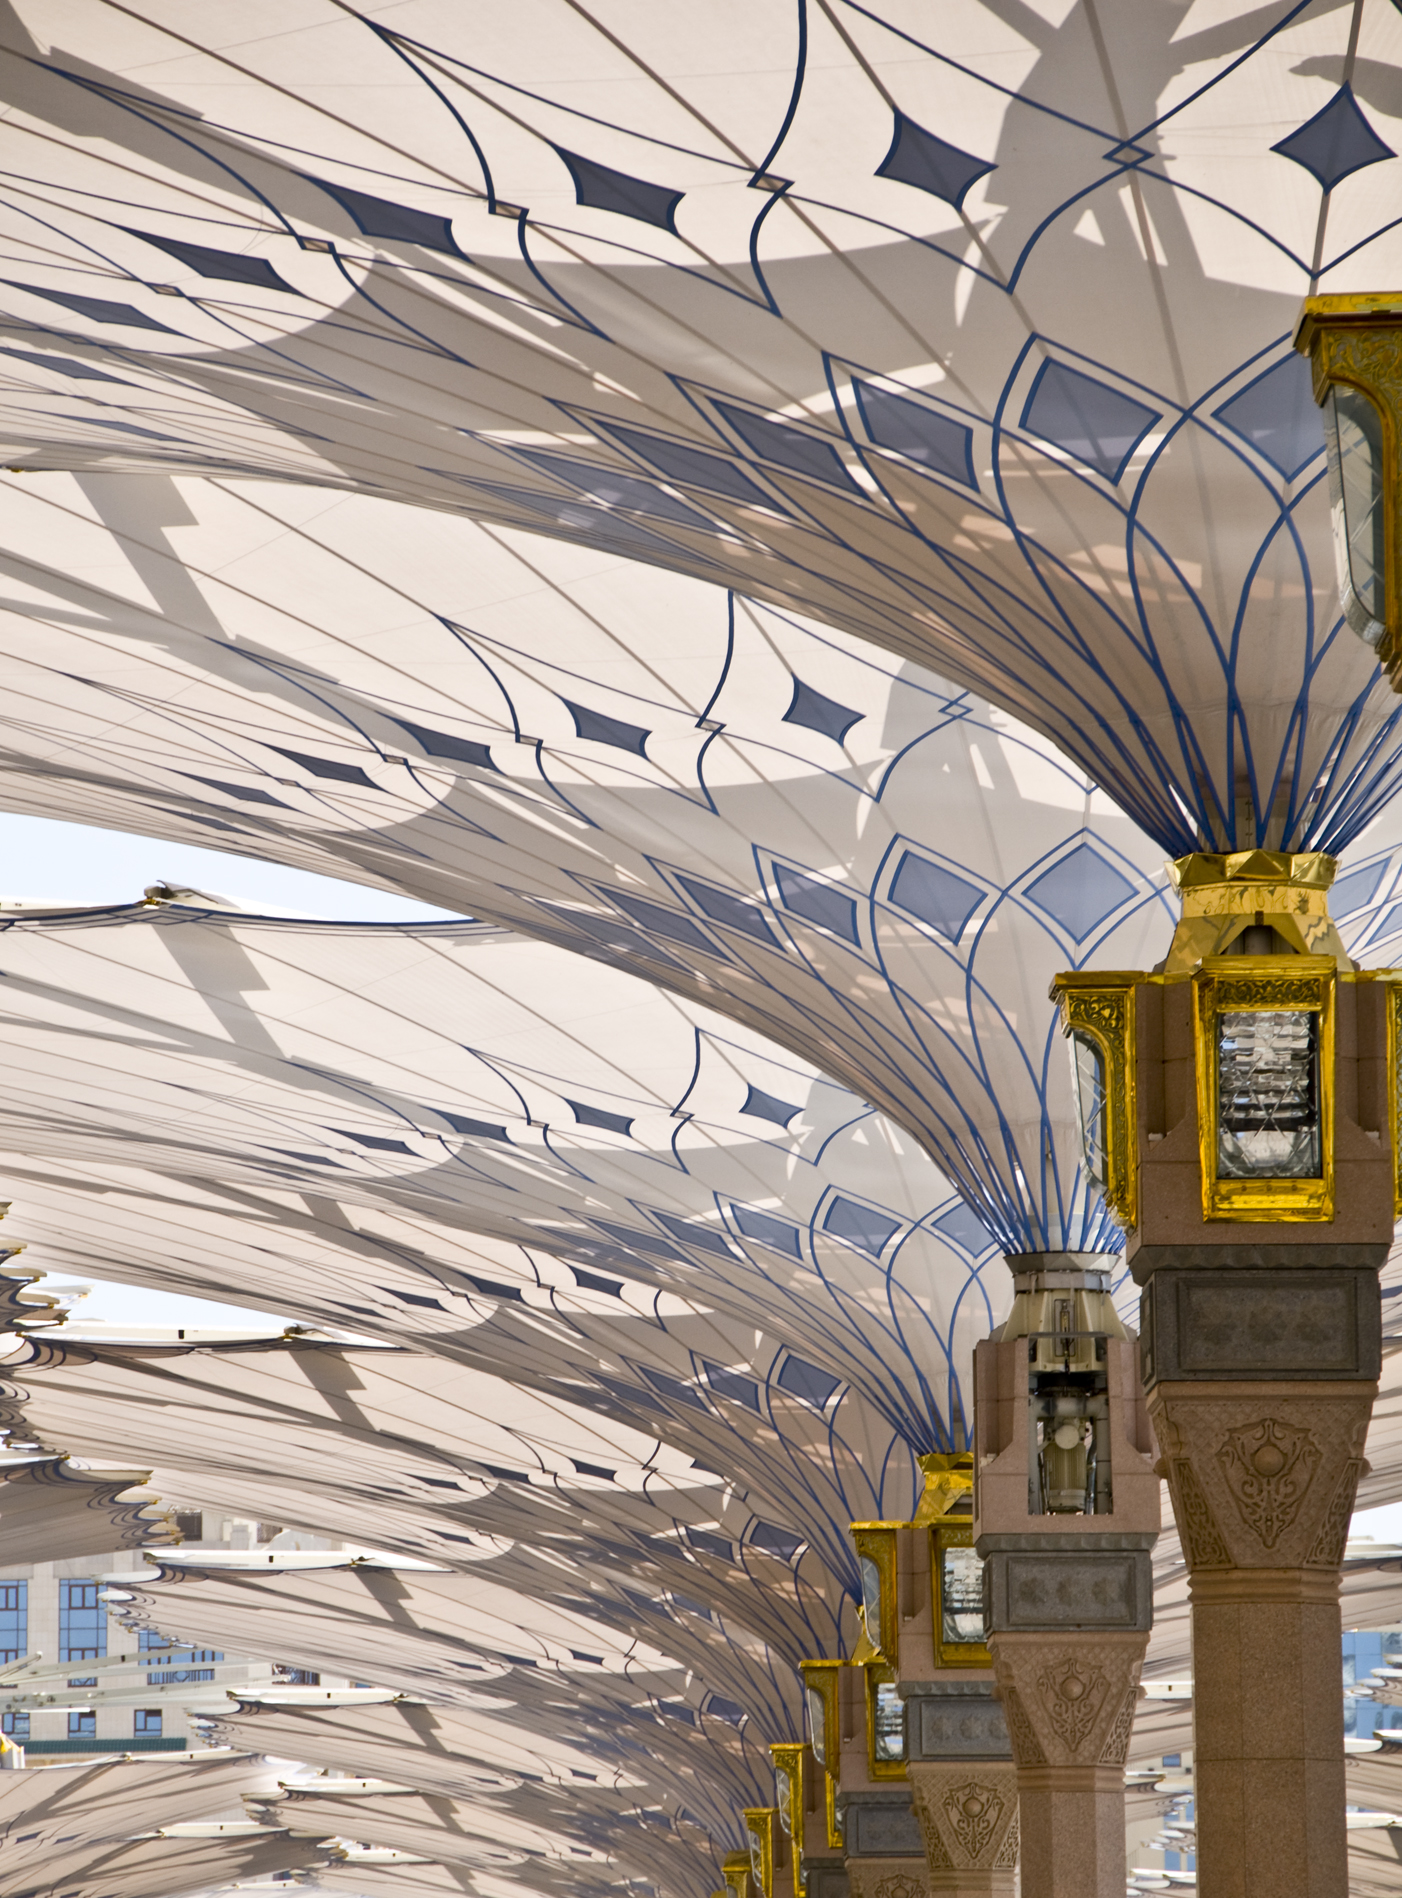 The giant umbrellas that protect pilgrims at the medina for Architecture upbrella